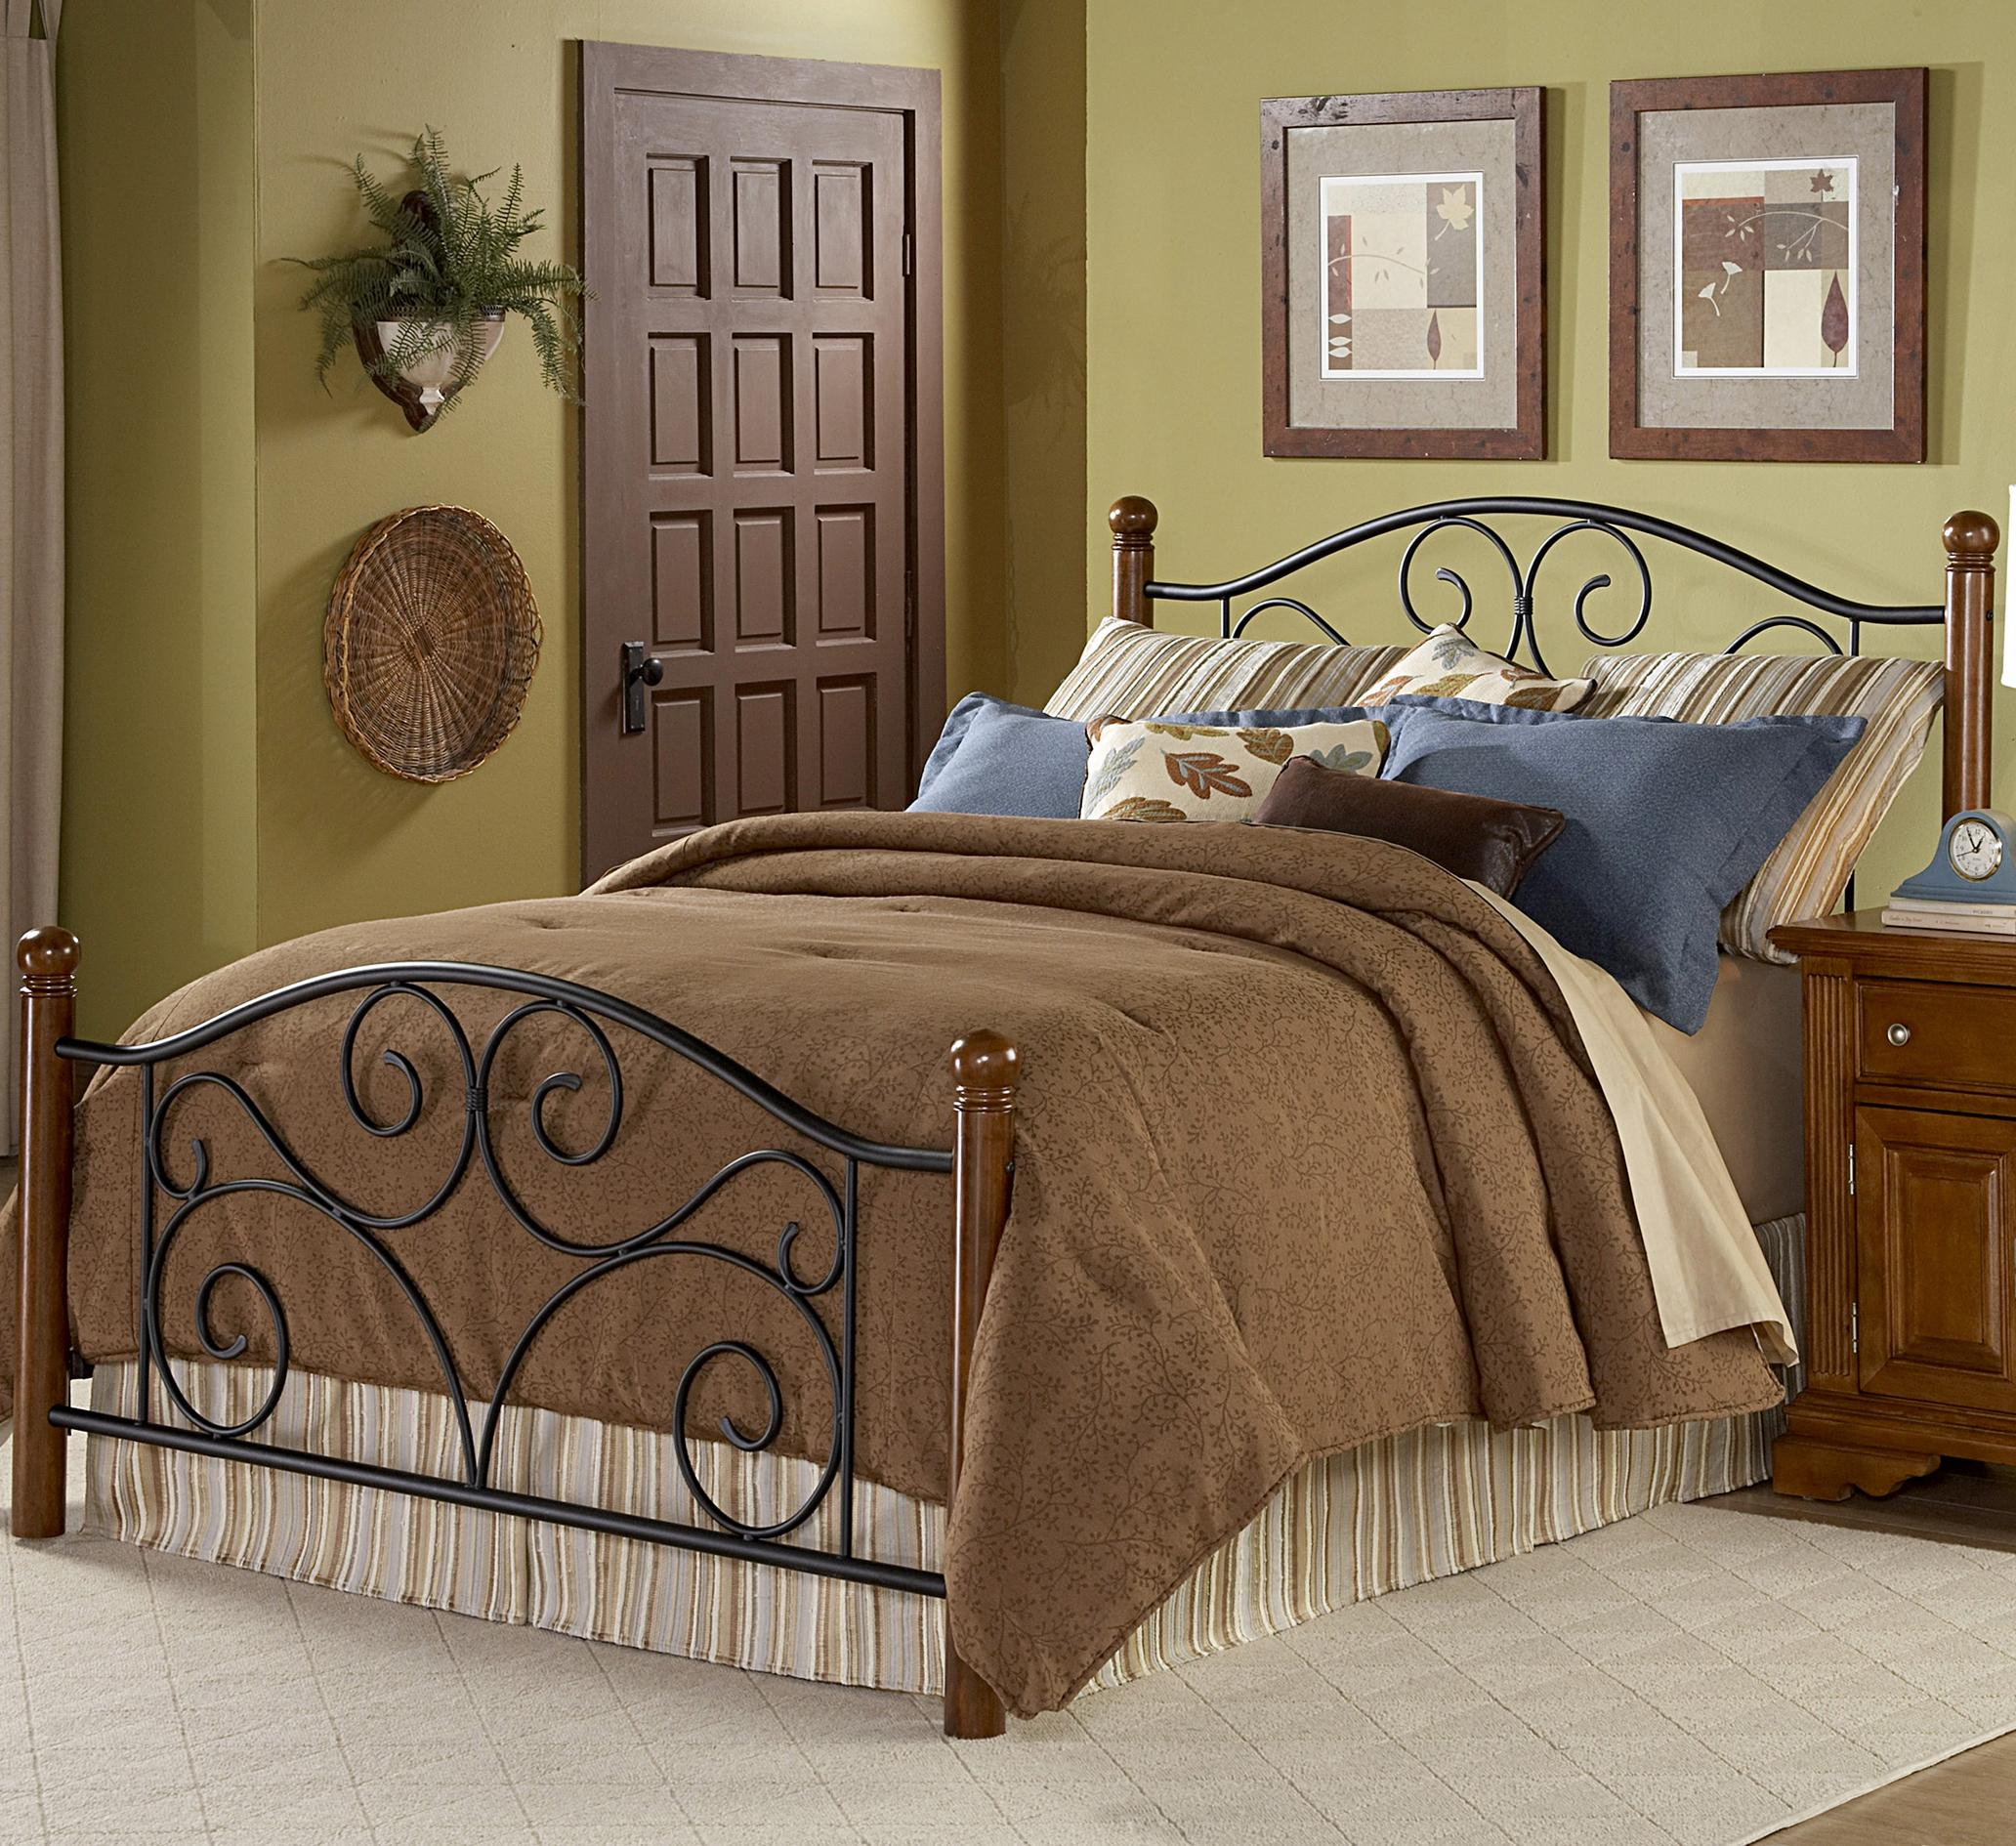 Fashion Bed Group Wood And Metal Beds Queen D W Frame Ahfa Headboard Footboard Dealer Locator